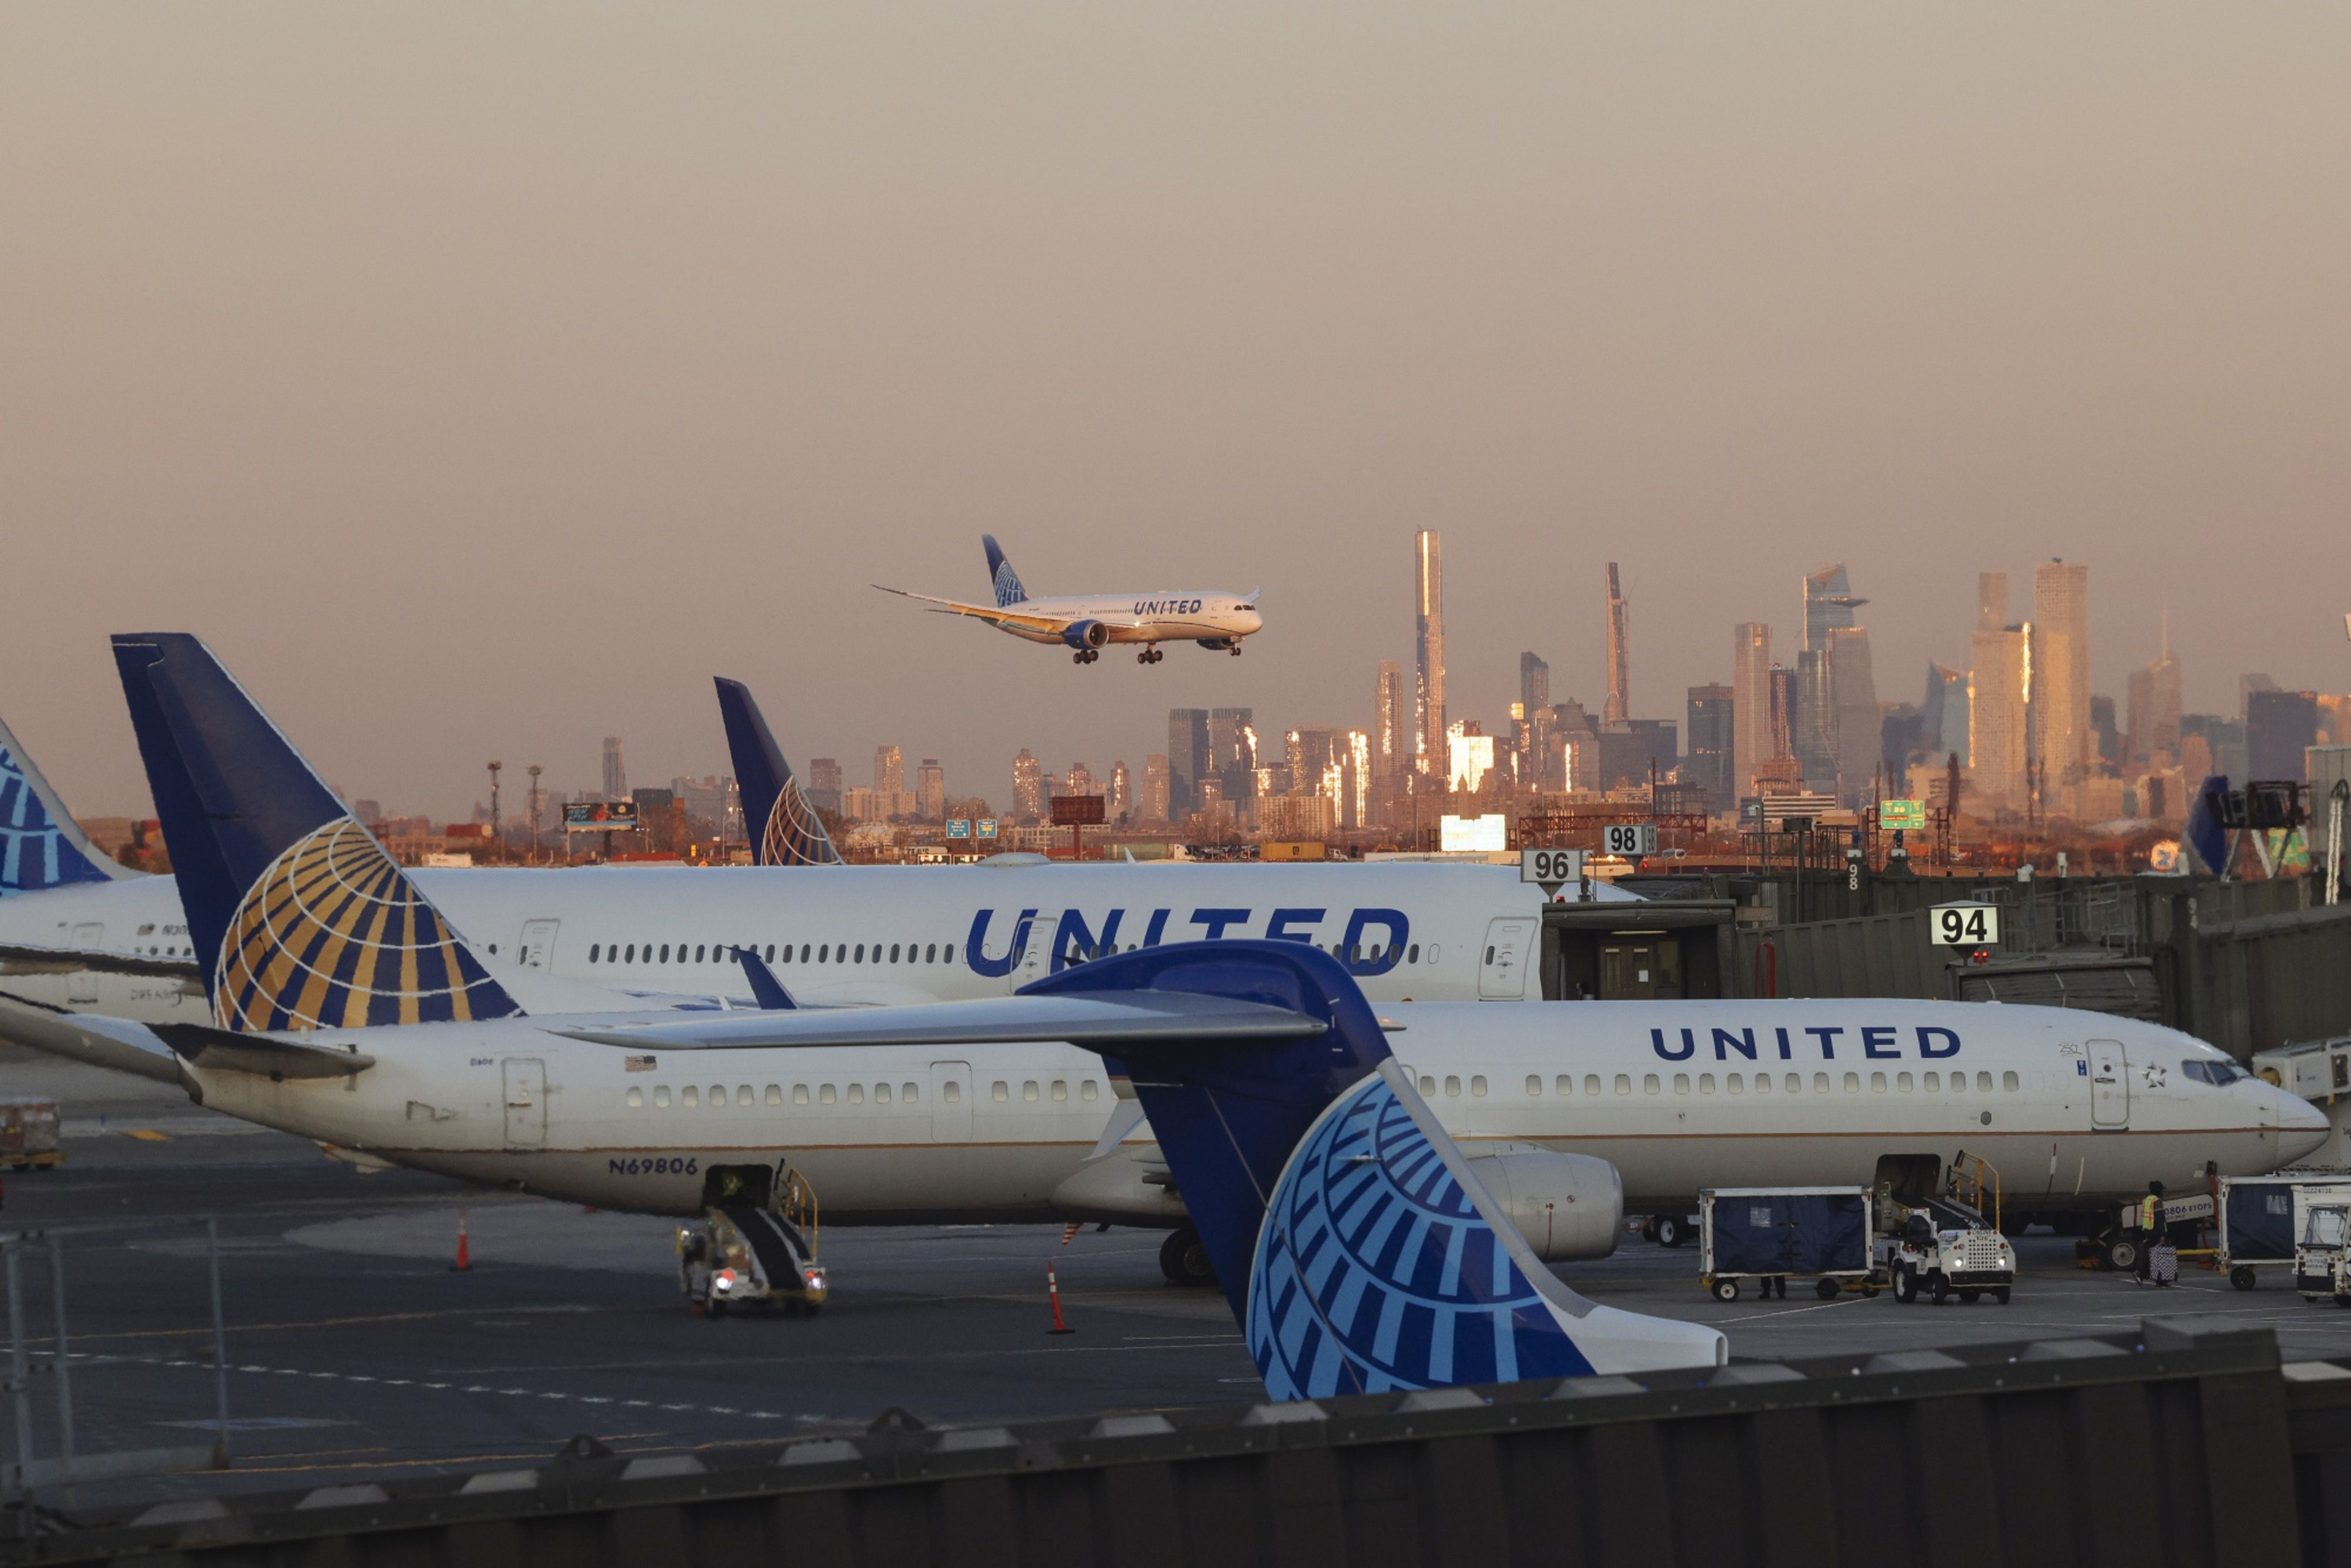 United Airlines puts creative account in review